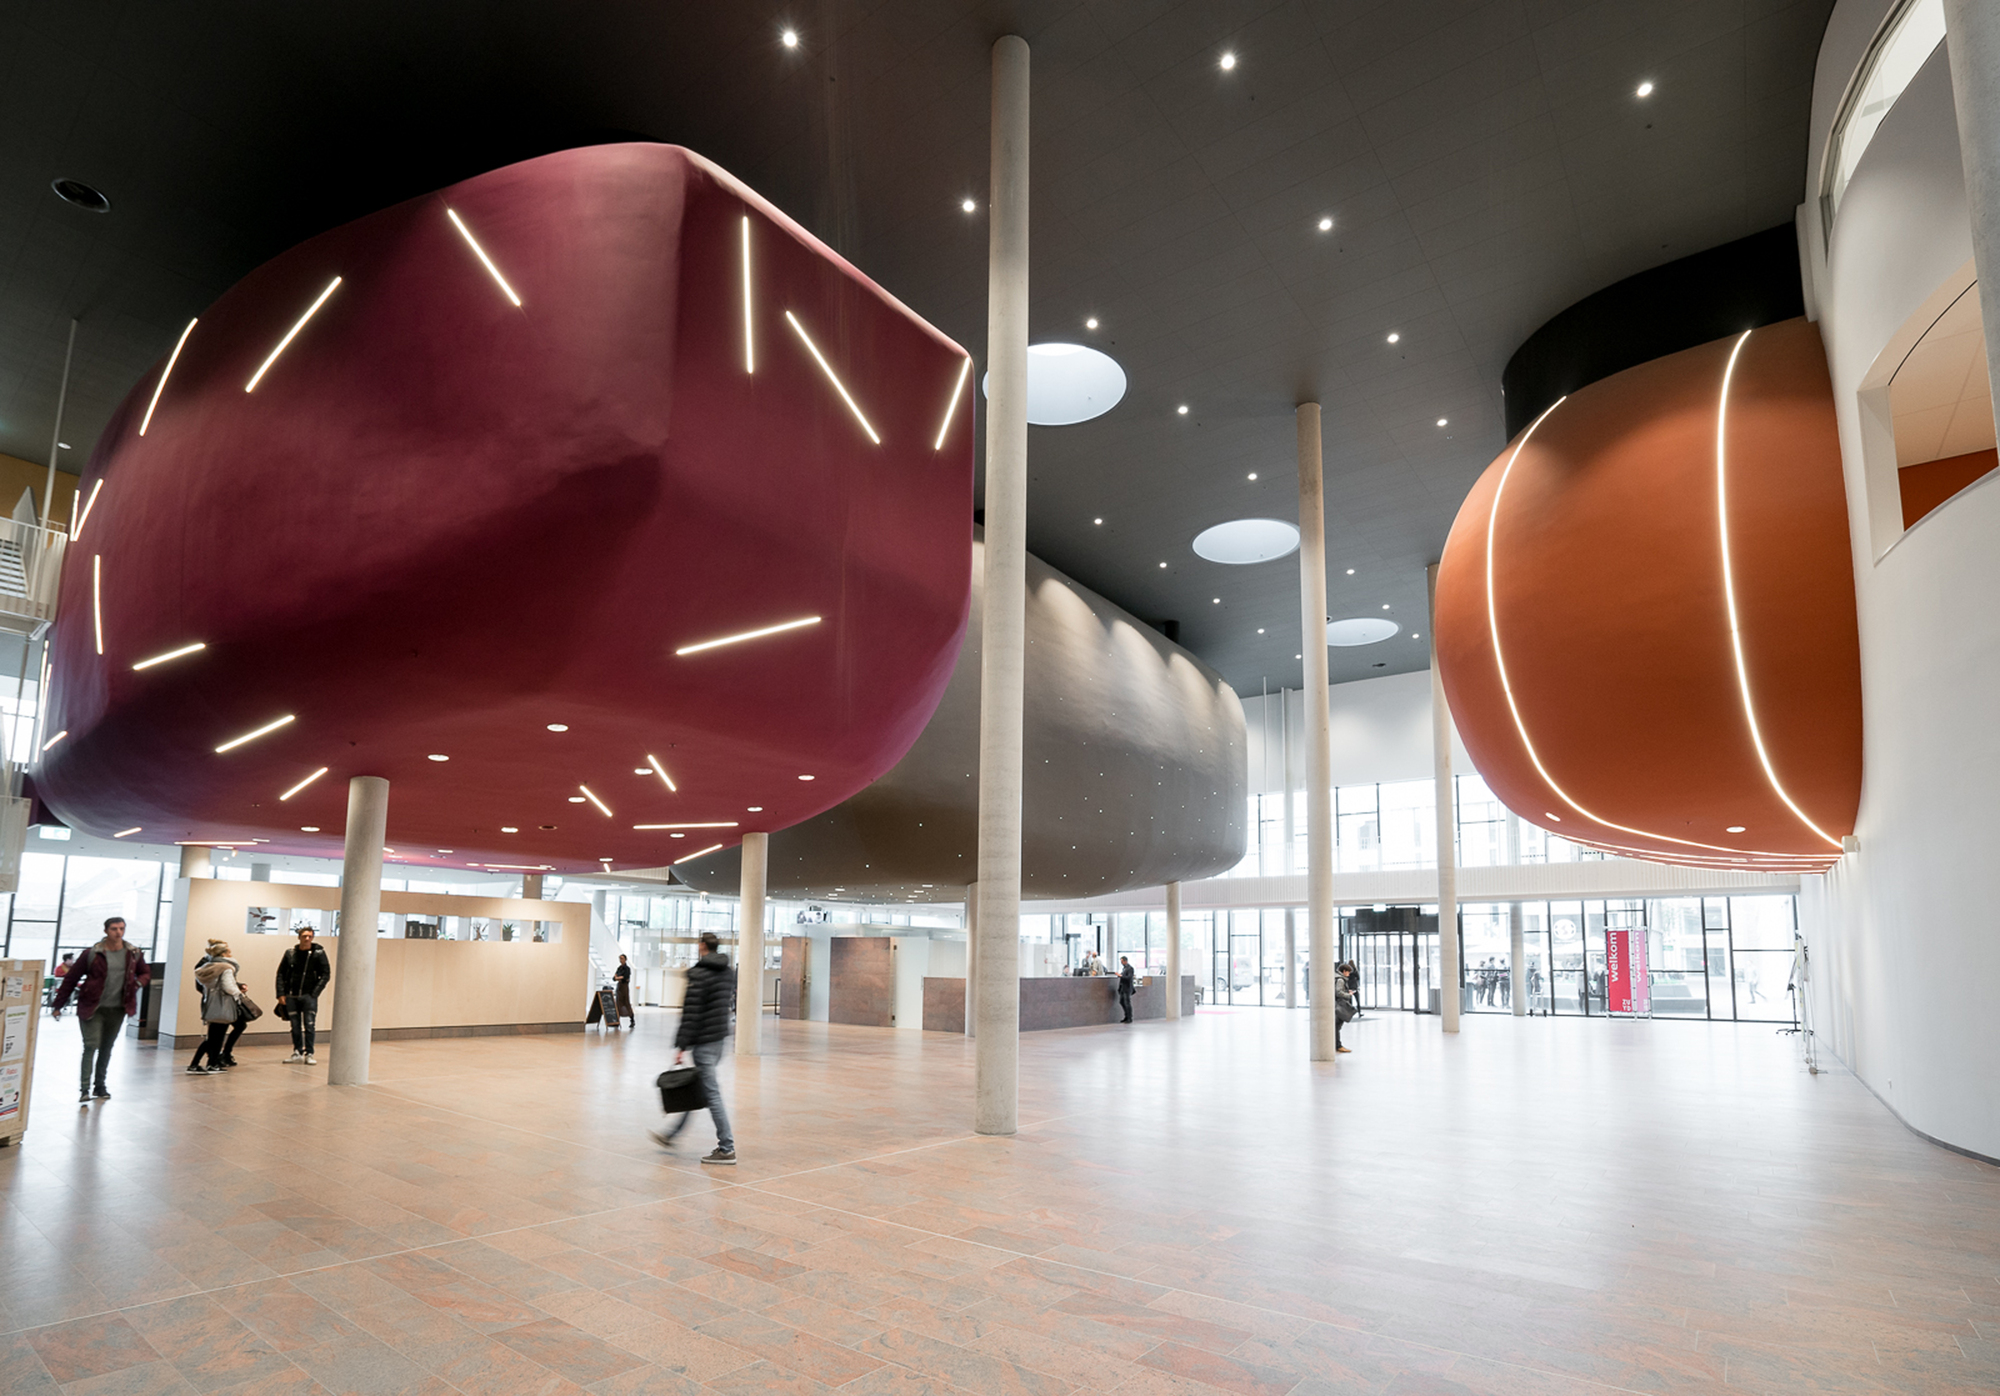 Interieur Design Sittard Culture And Education Center Jeanne Dekkers Architectuur Archdaily